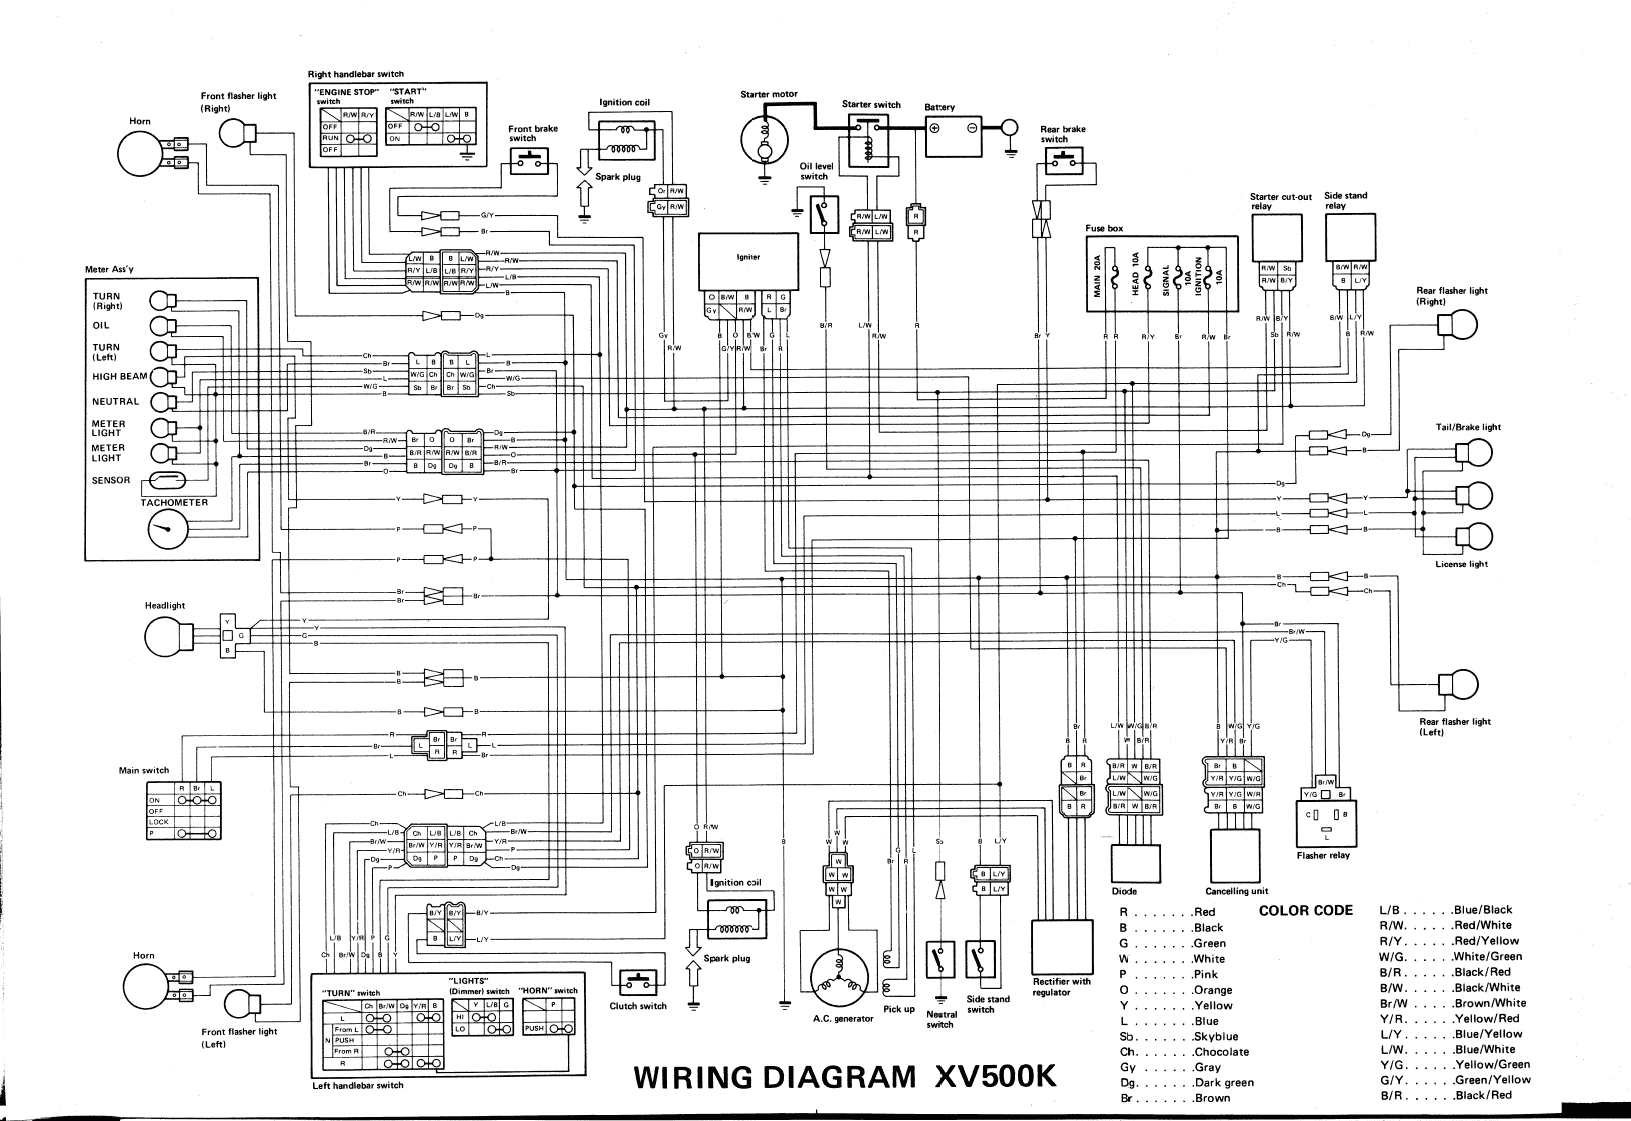 wiring diagram toyota tacoma 2008 wirdig location map ecu wiring diagram lincoln mkx fuse box diagram toyota